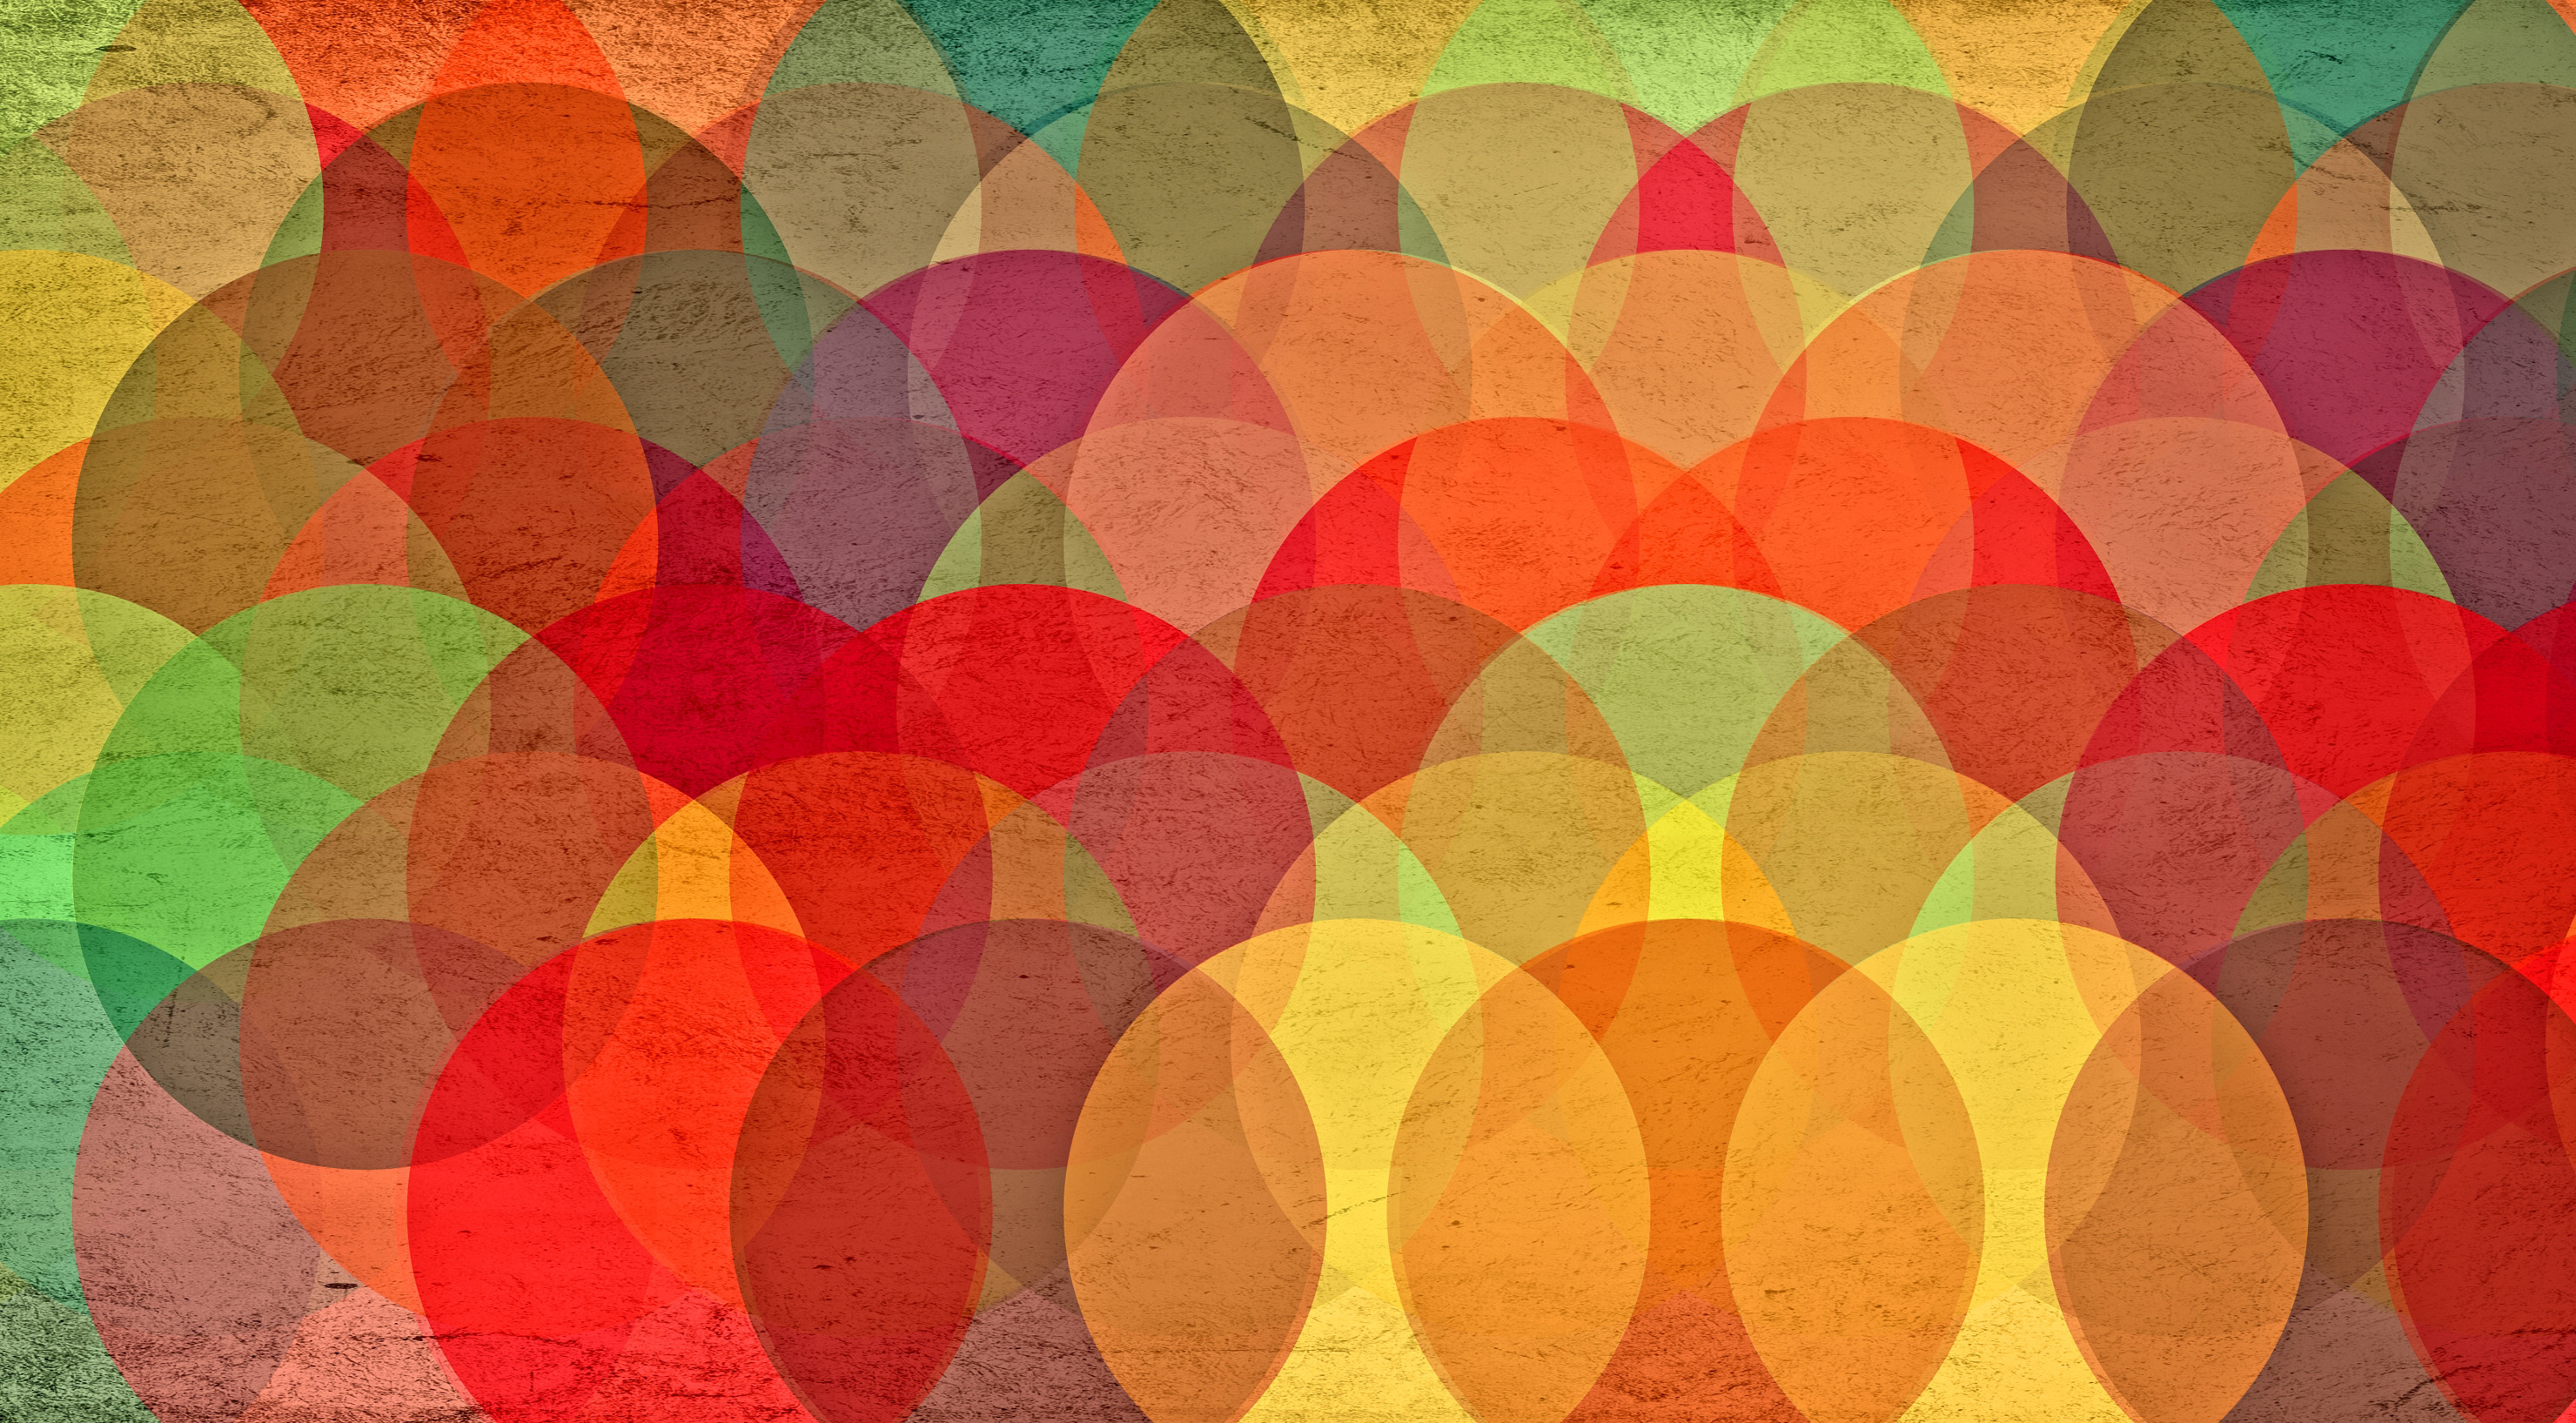 Colorful Circles on Grunge Background - Abstract Pattern, Abstract, Orange, Rainbow, Print, HQ Photo